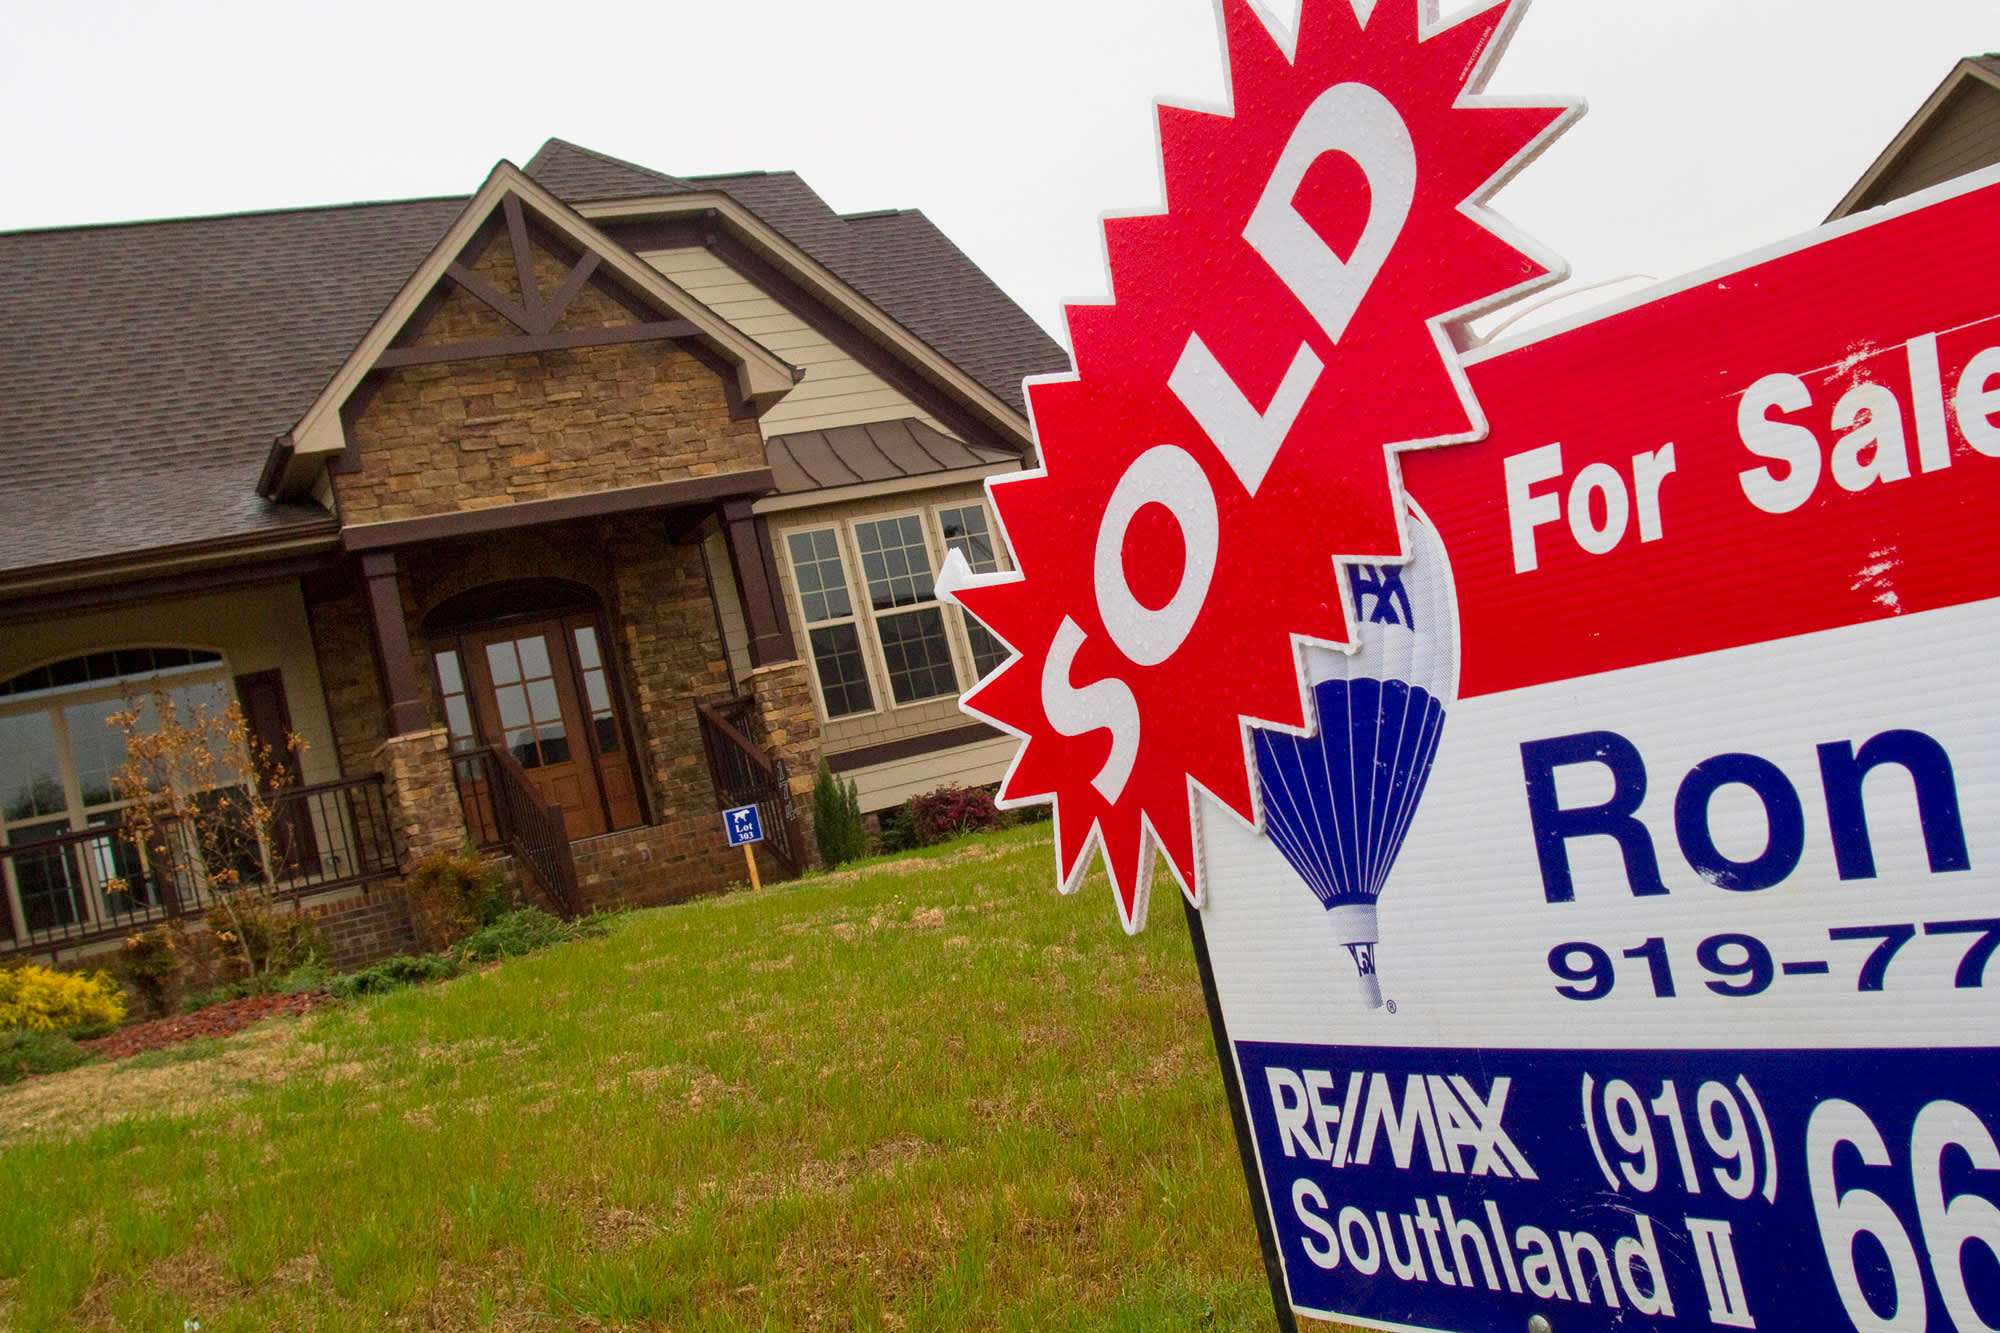 Mortgage applications surge as rates continue to drop